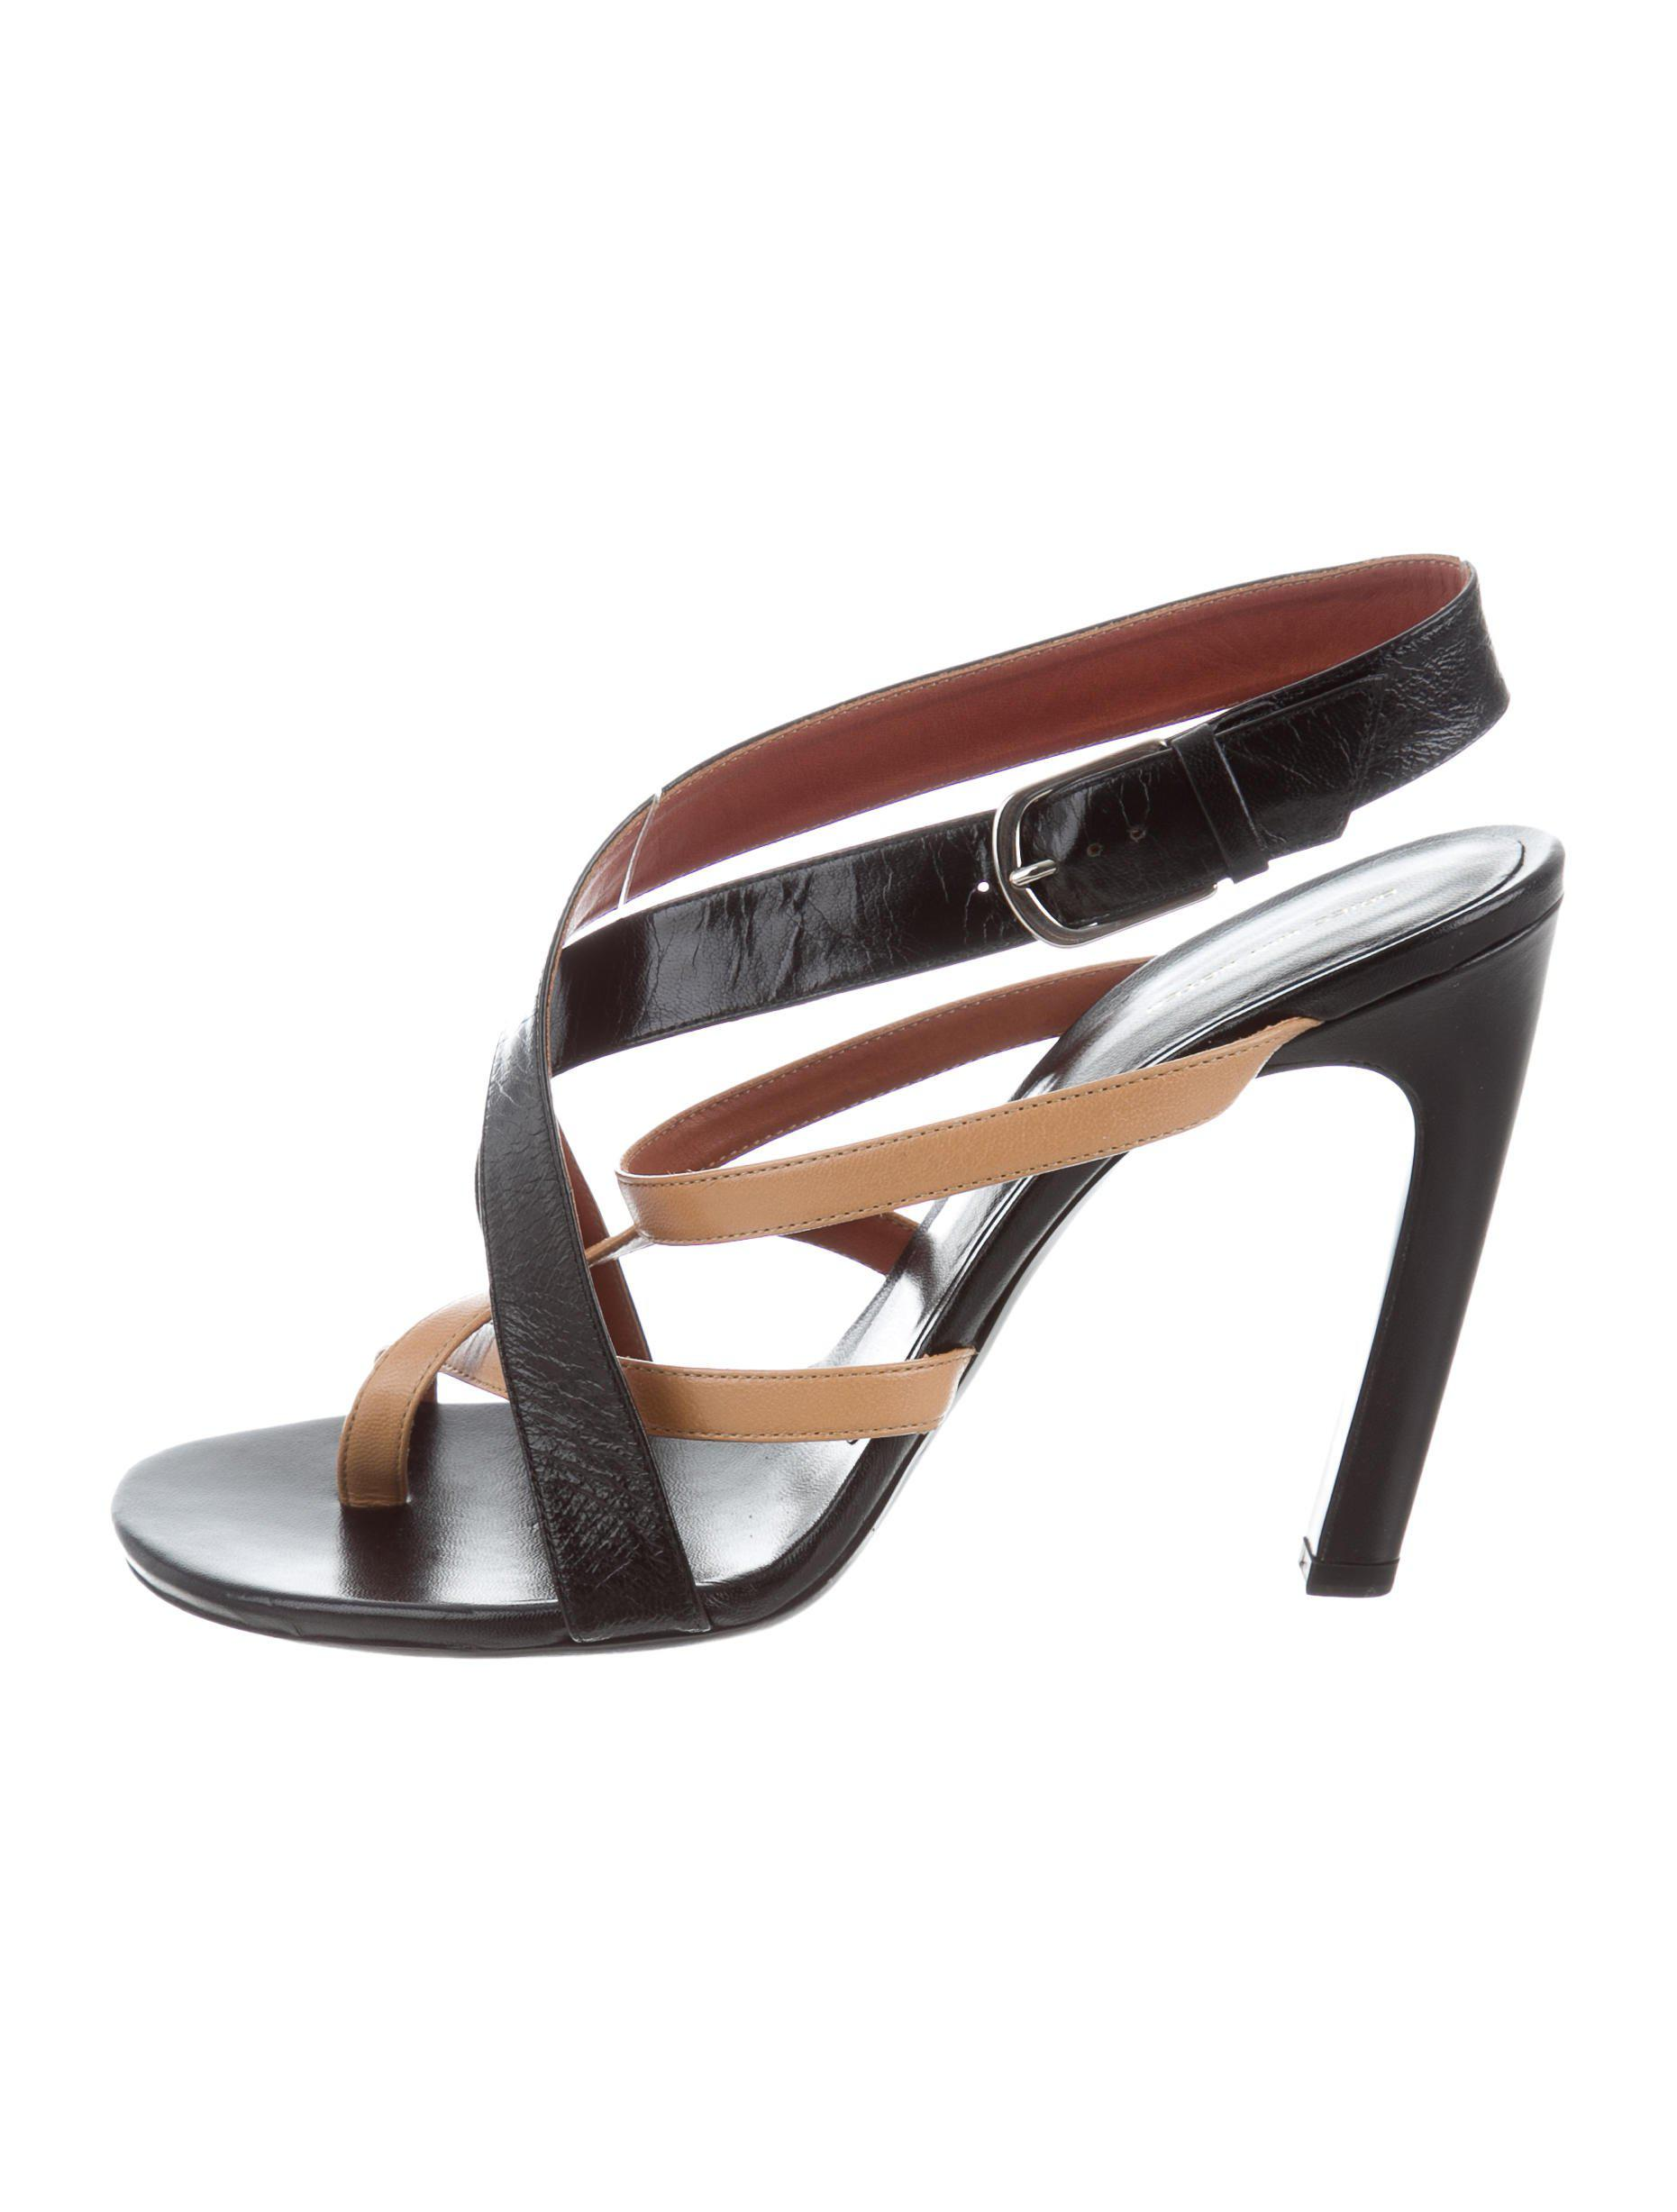 7db21387221aaa Lyst - Dries Van Noten Leather Slingback Sandals Black in Natural